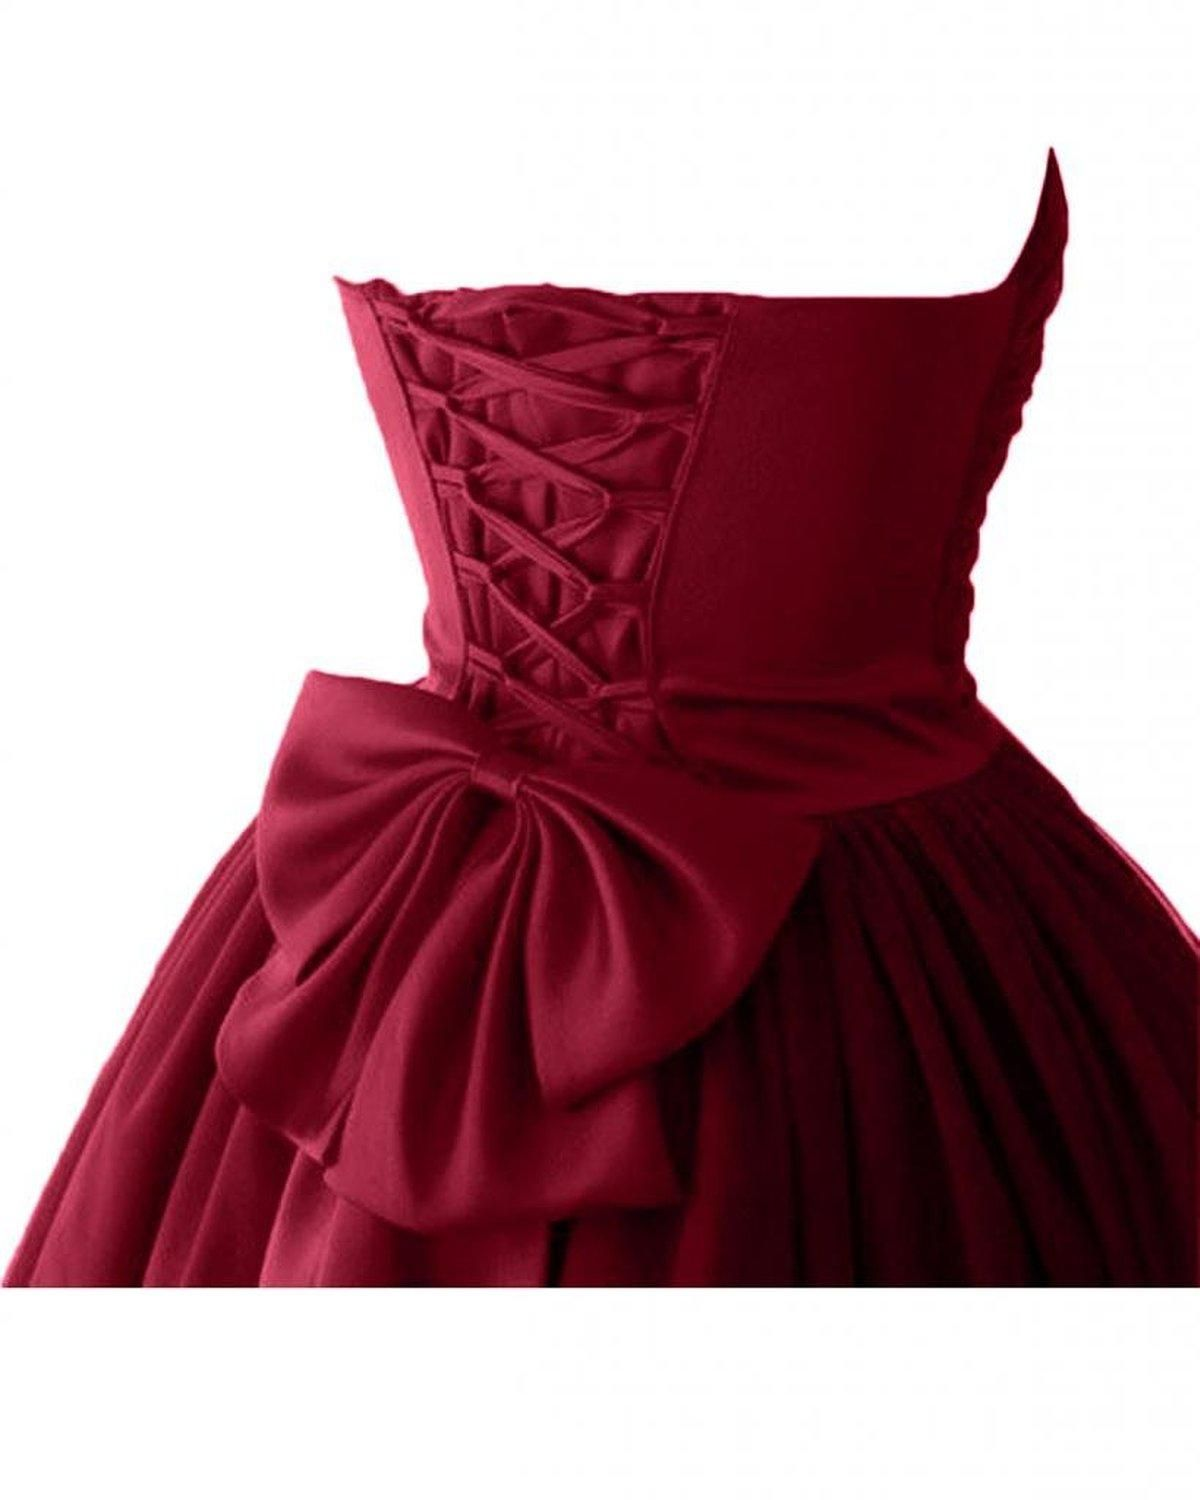 d1e6ea1f8f6 Real Image Cheap Short Puffy Homecoming Prom Dresses 2015 under 100 Victoria  Burgundy Ball Gown Sweetheart Cocktail Dresses with Lace up